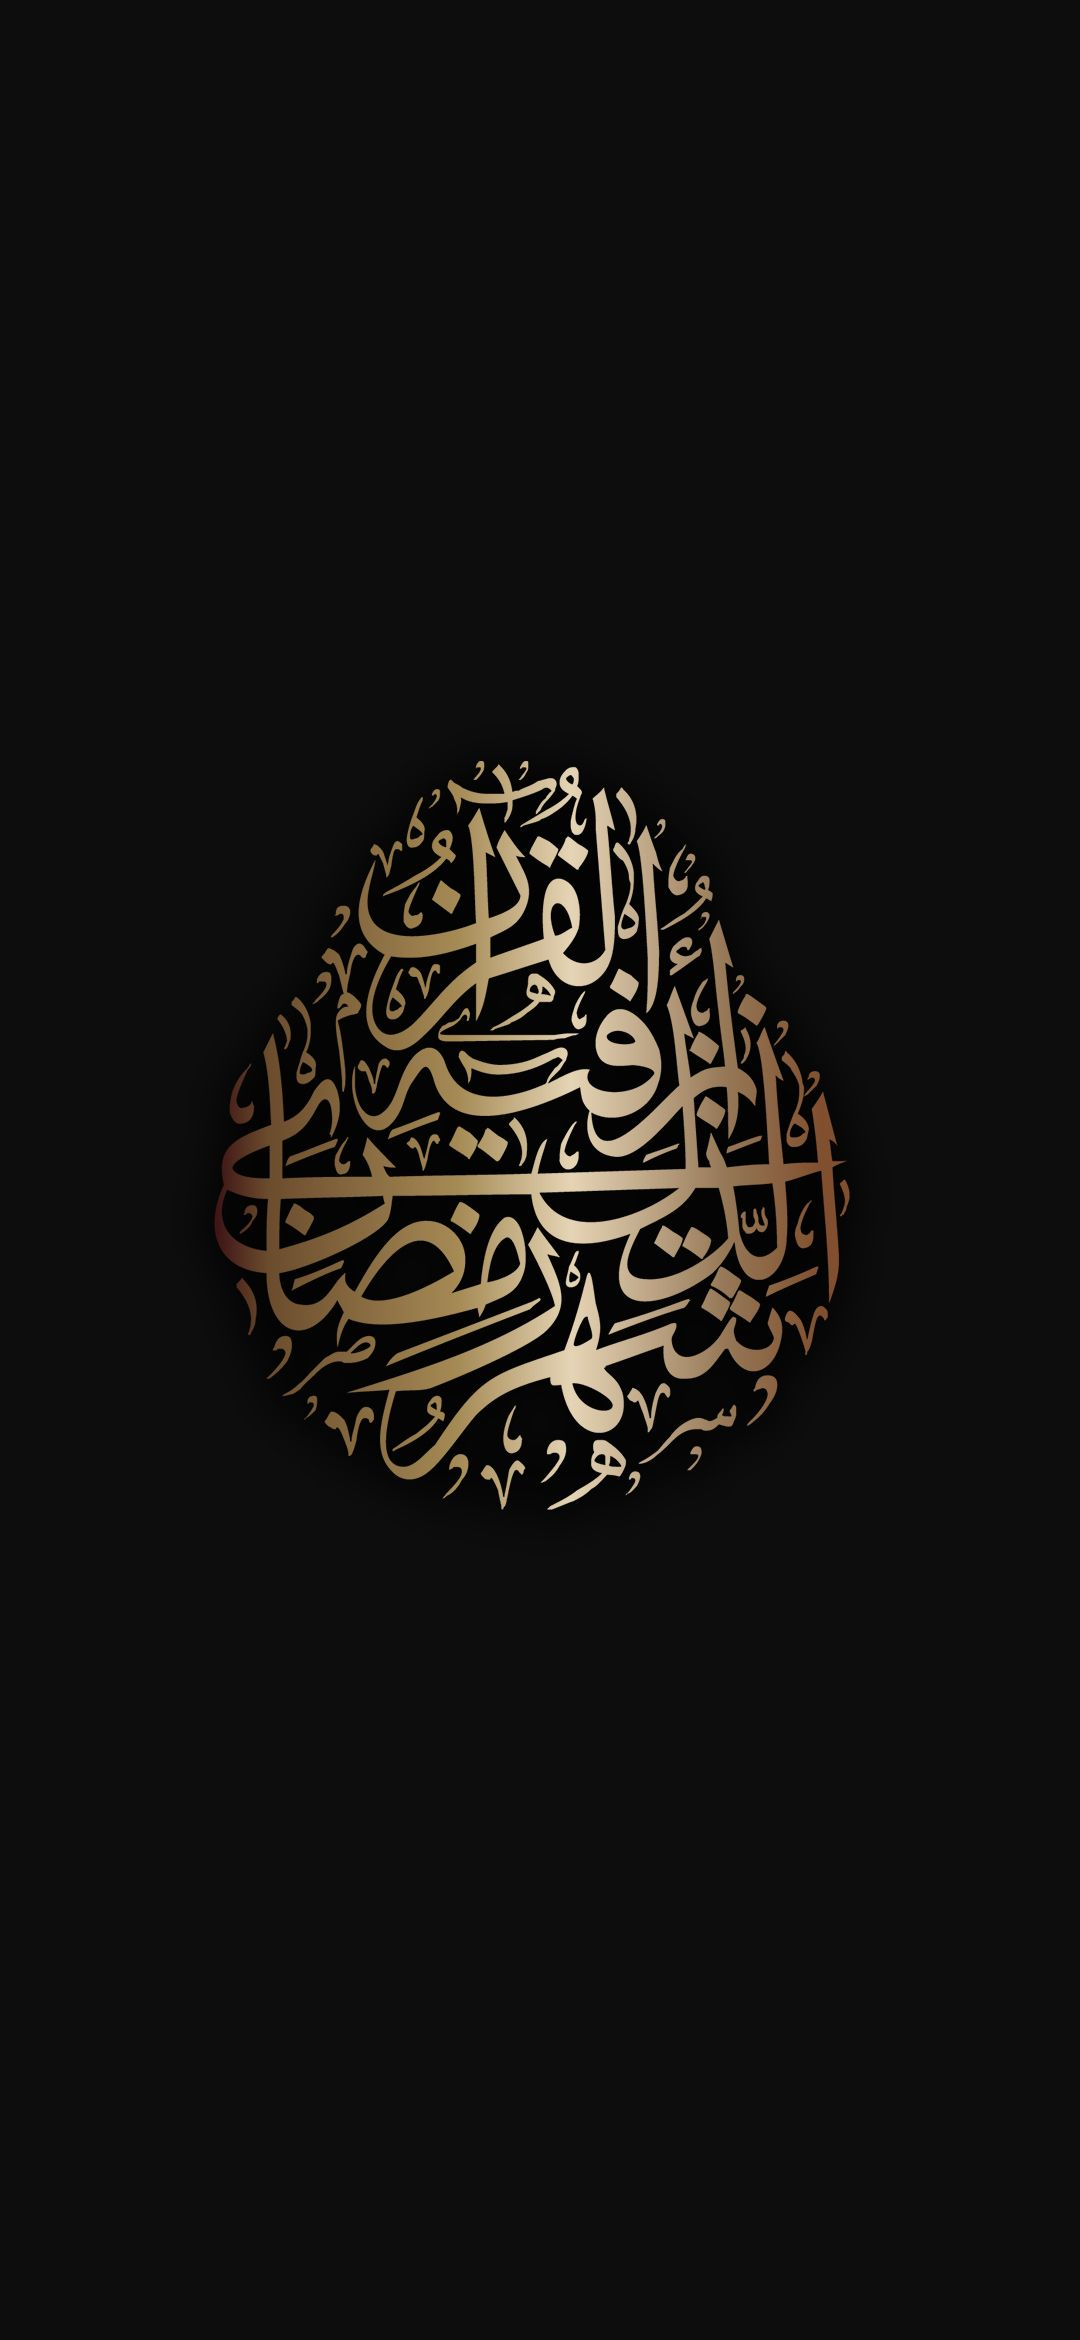 Islamic Wallpaper Calligraphy Amoled Wallpaper Photo By Ammar Albesher Hd Wallpaper For Iphone Islamic Wallpaper Hd Islamic Wallpaper Islamic Wallpaper Iphone